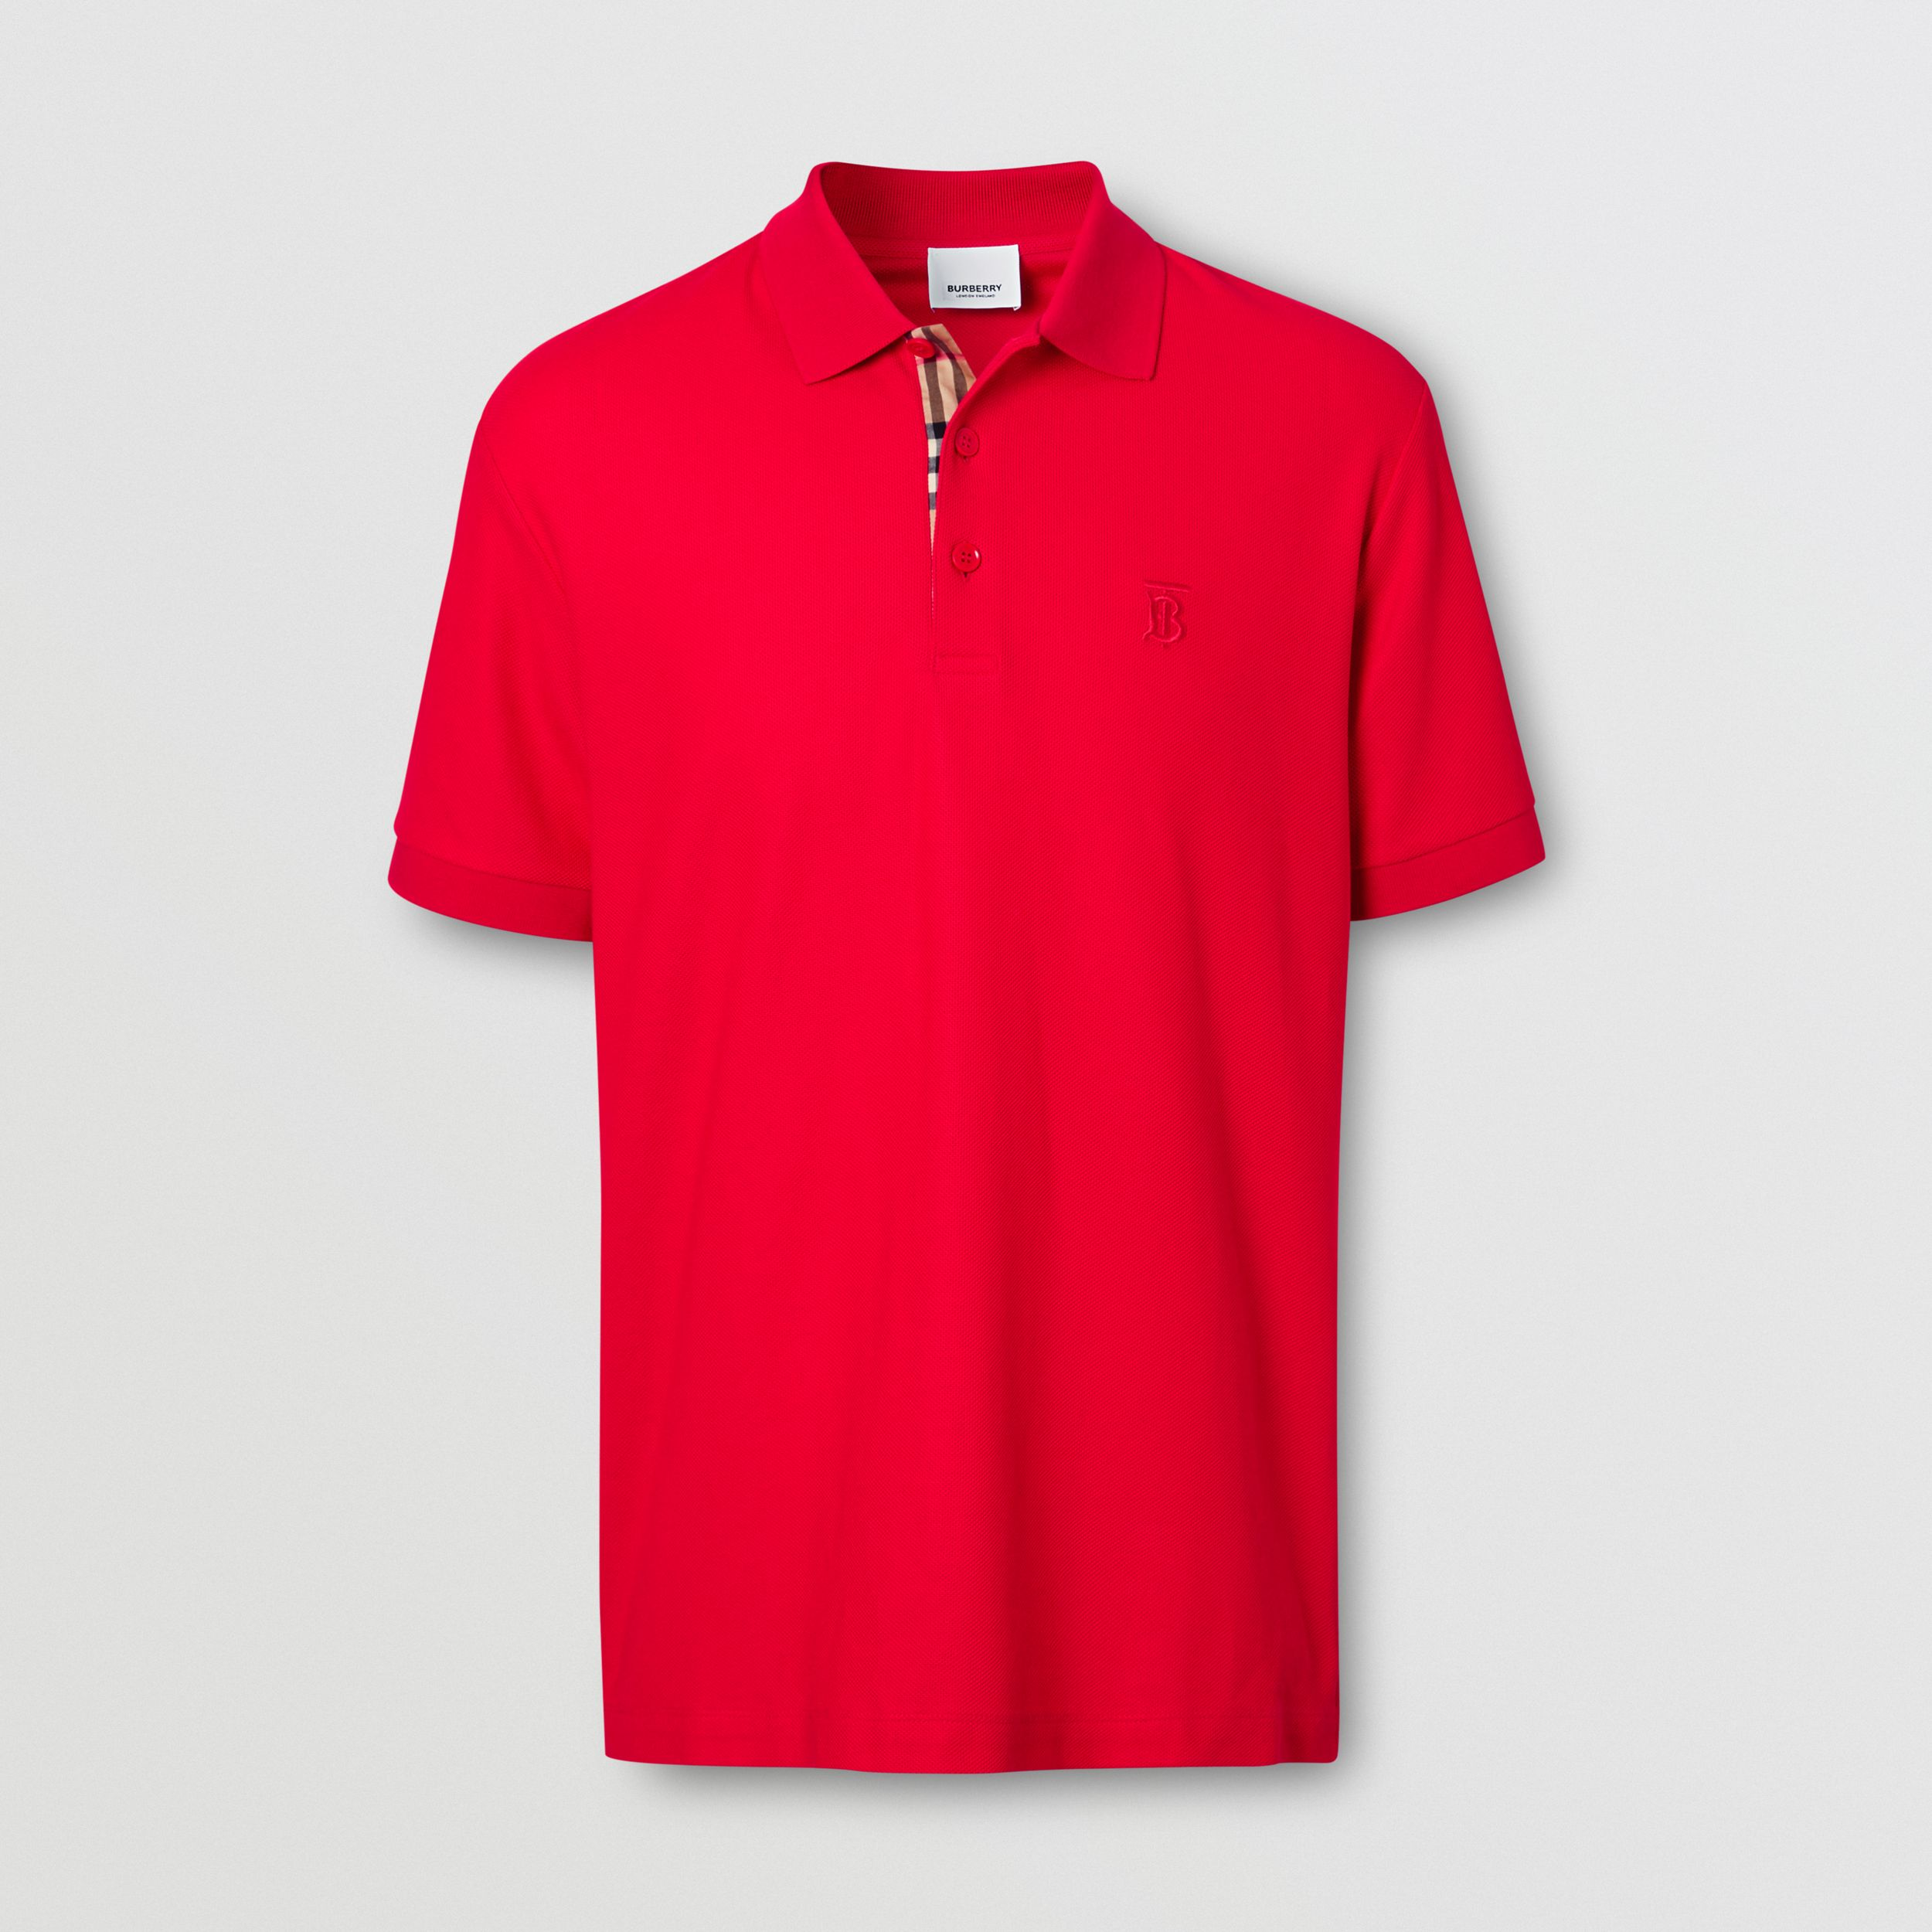 Monogram Motif Cotton Piqué Polo Shirt in Bright Red - Men | Burberry - 4